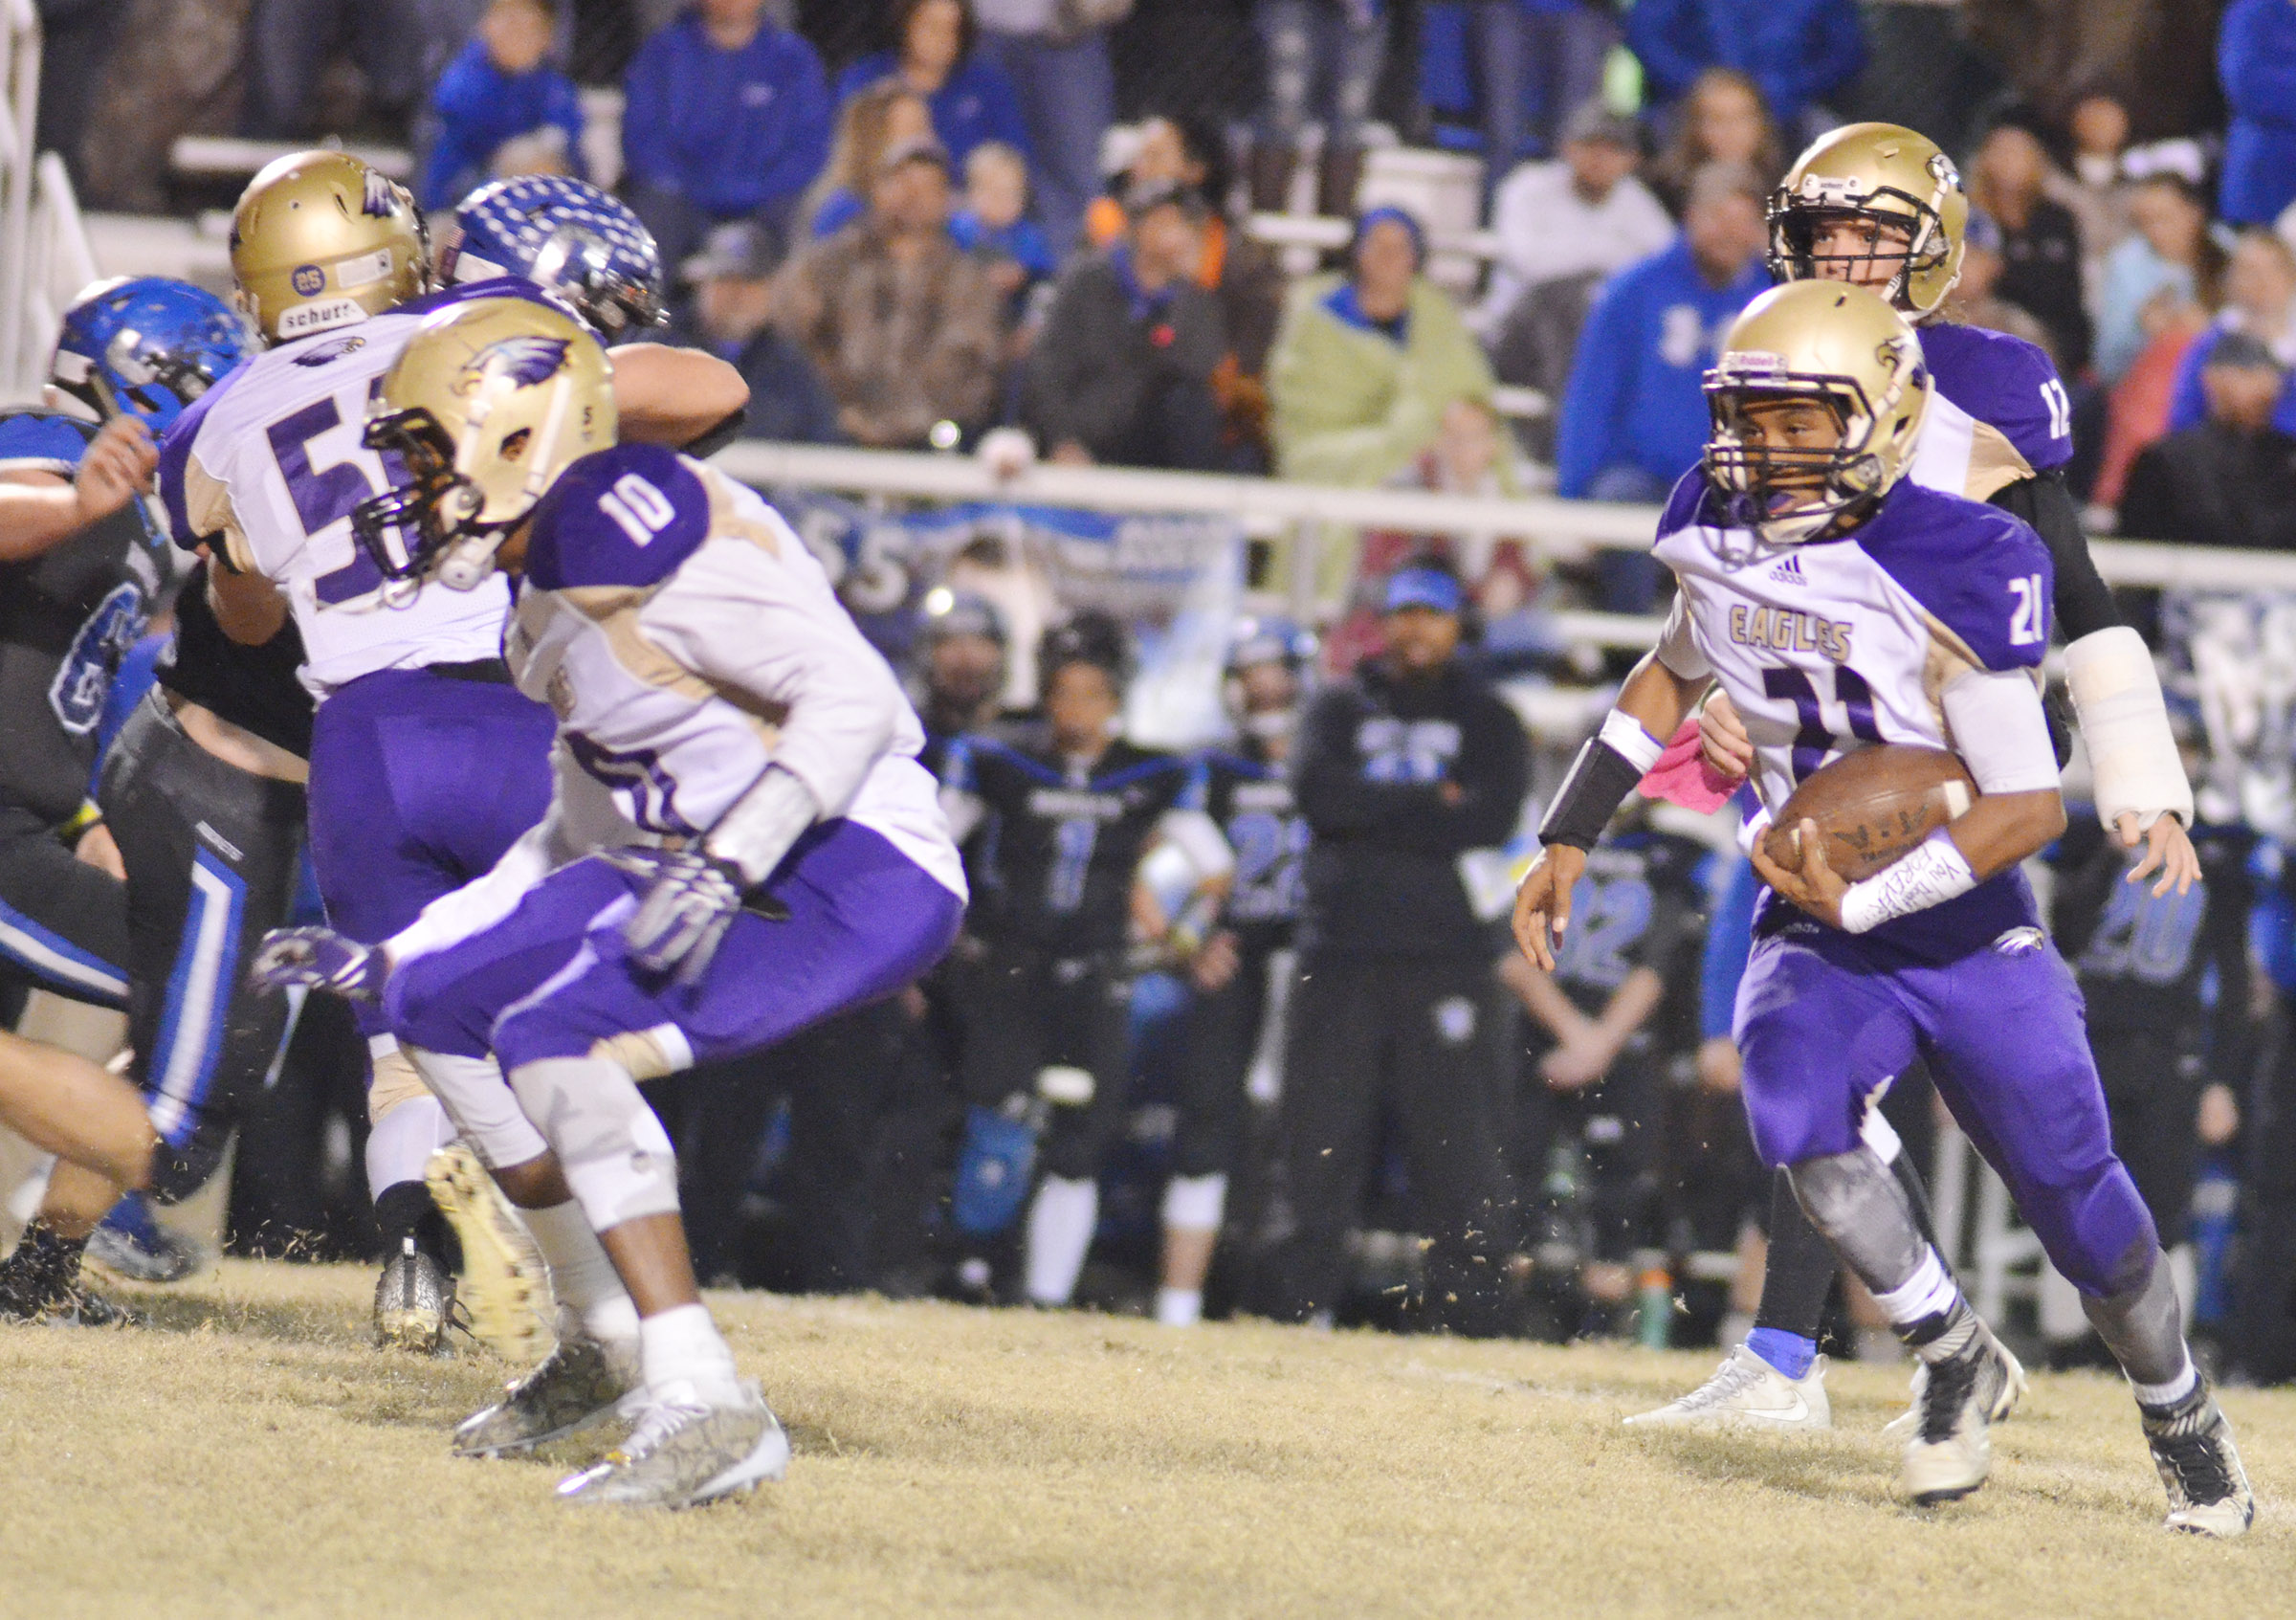 CHS junior Daesean Vancleave runs the ball.